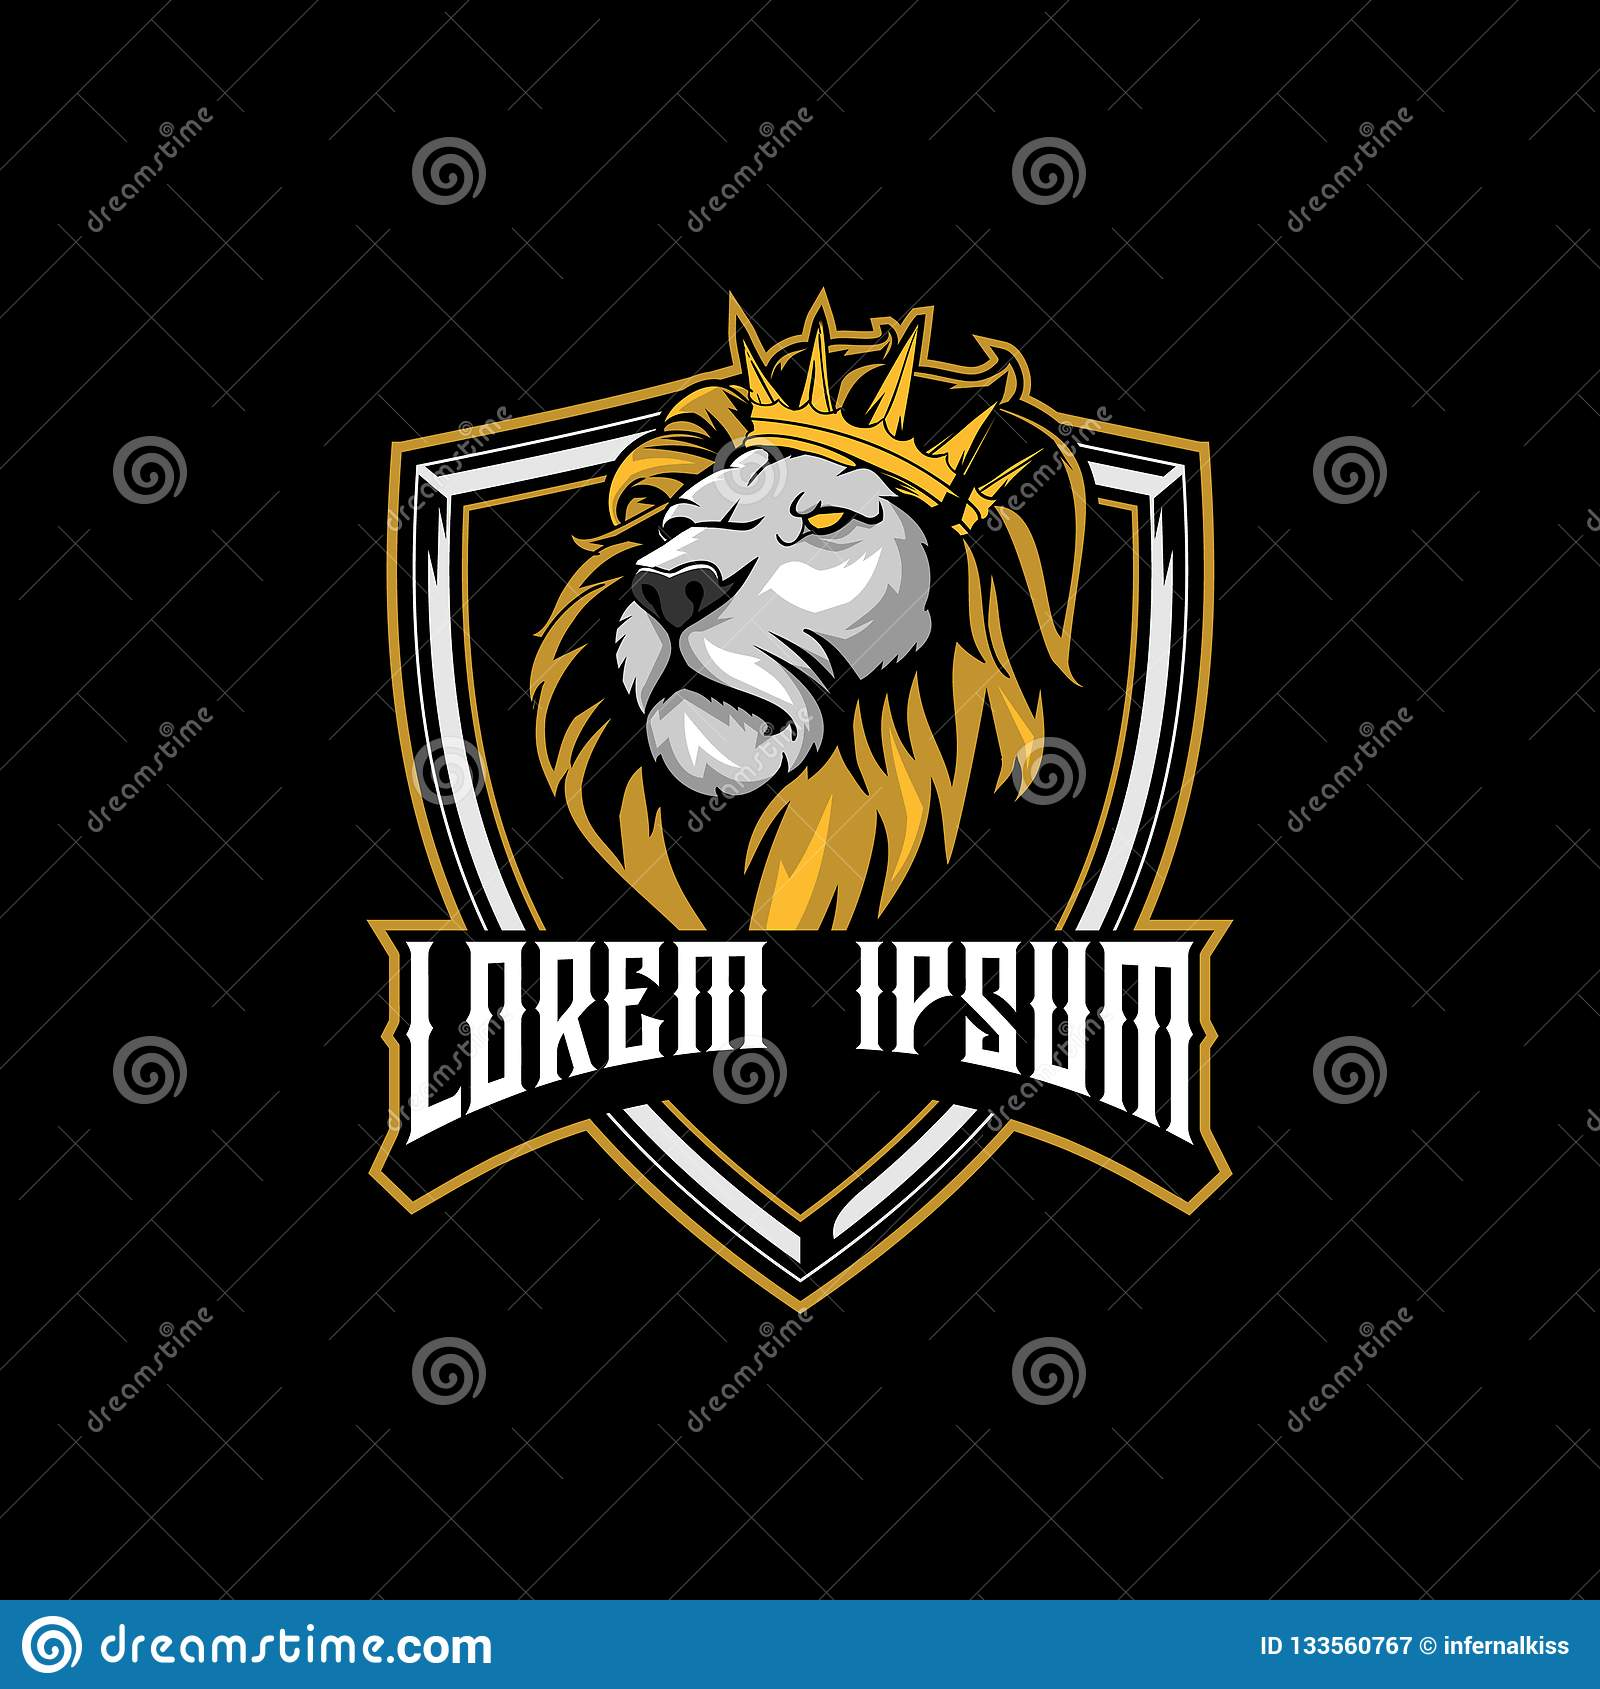 King Crown Cartoon Logo : Browse our king crown images, graphics, and designs from +79.322 free vectors graphics.